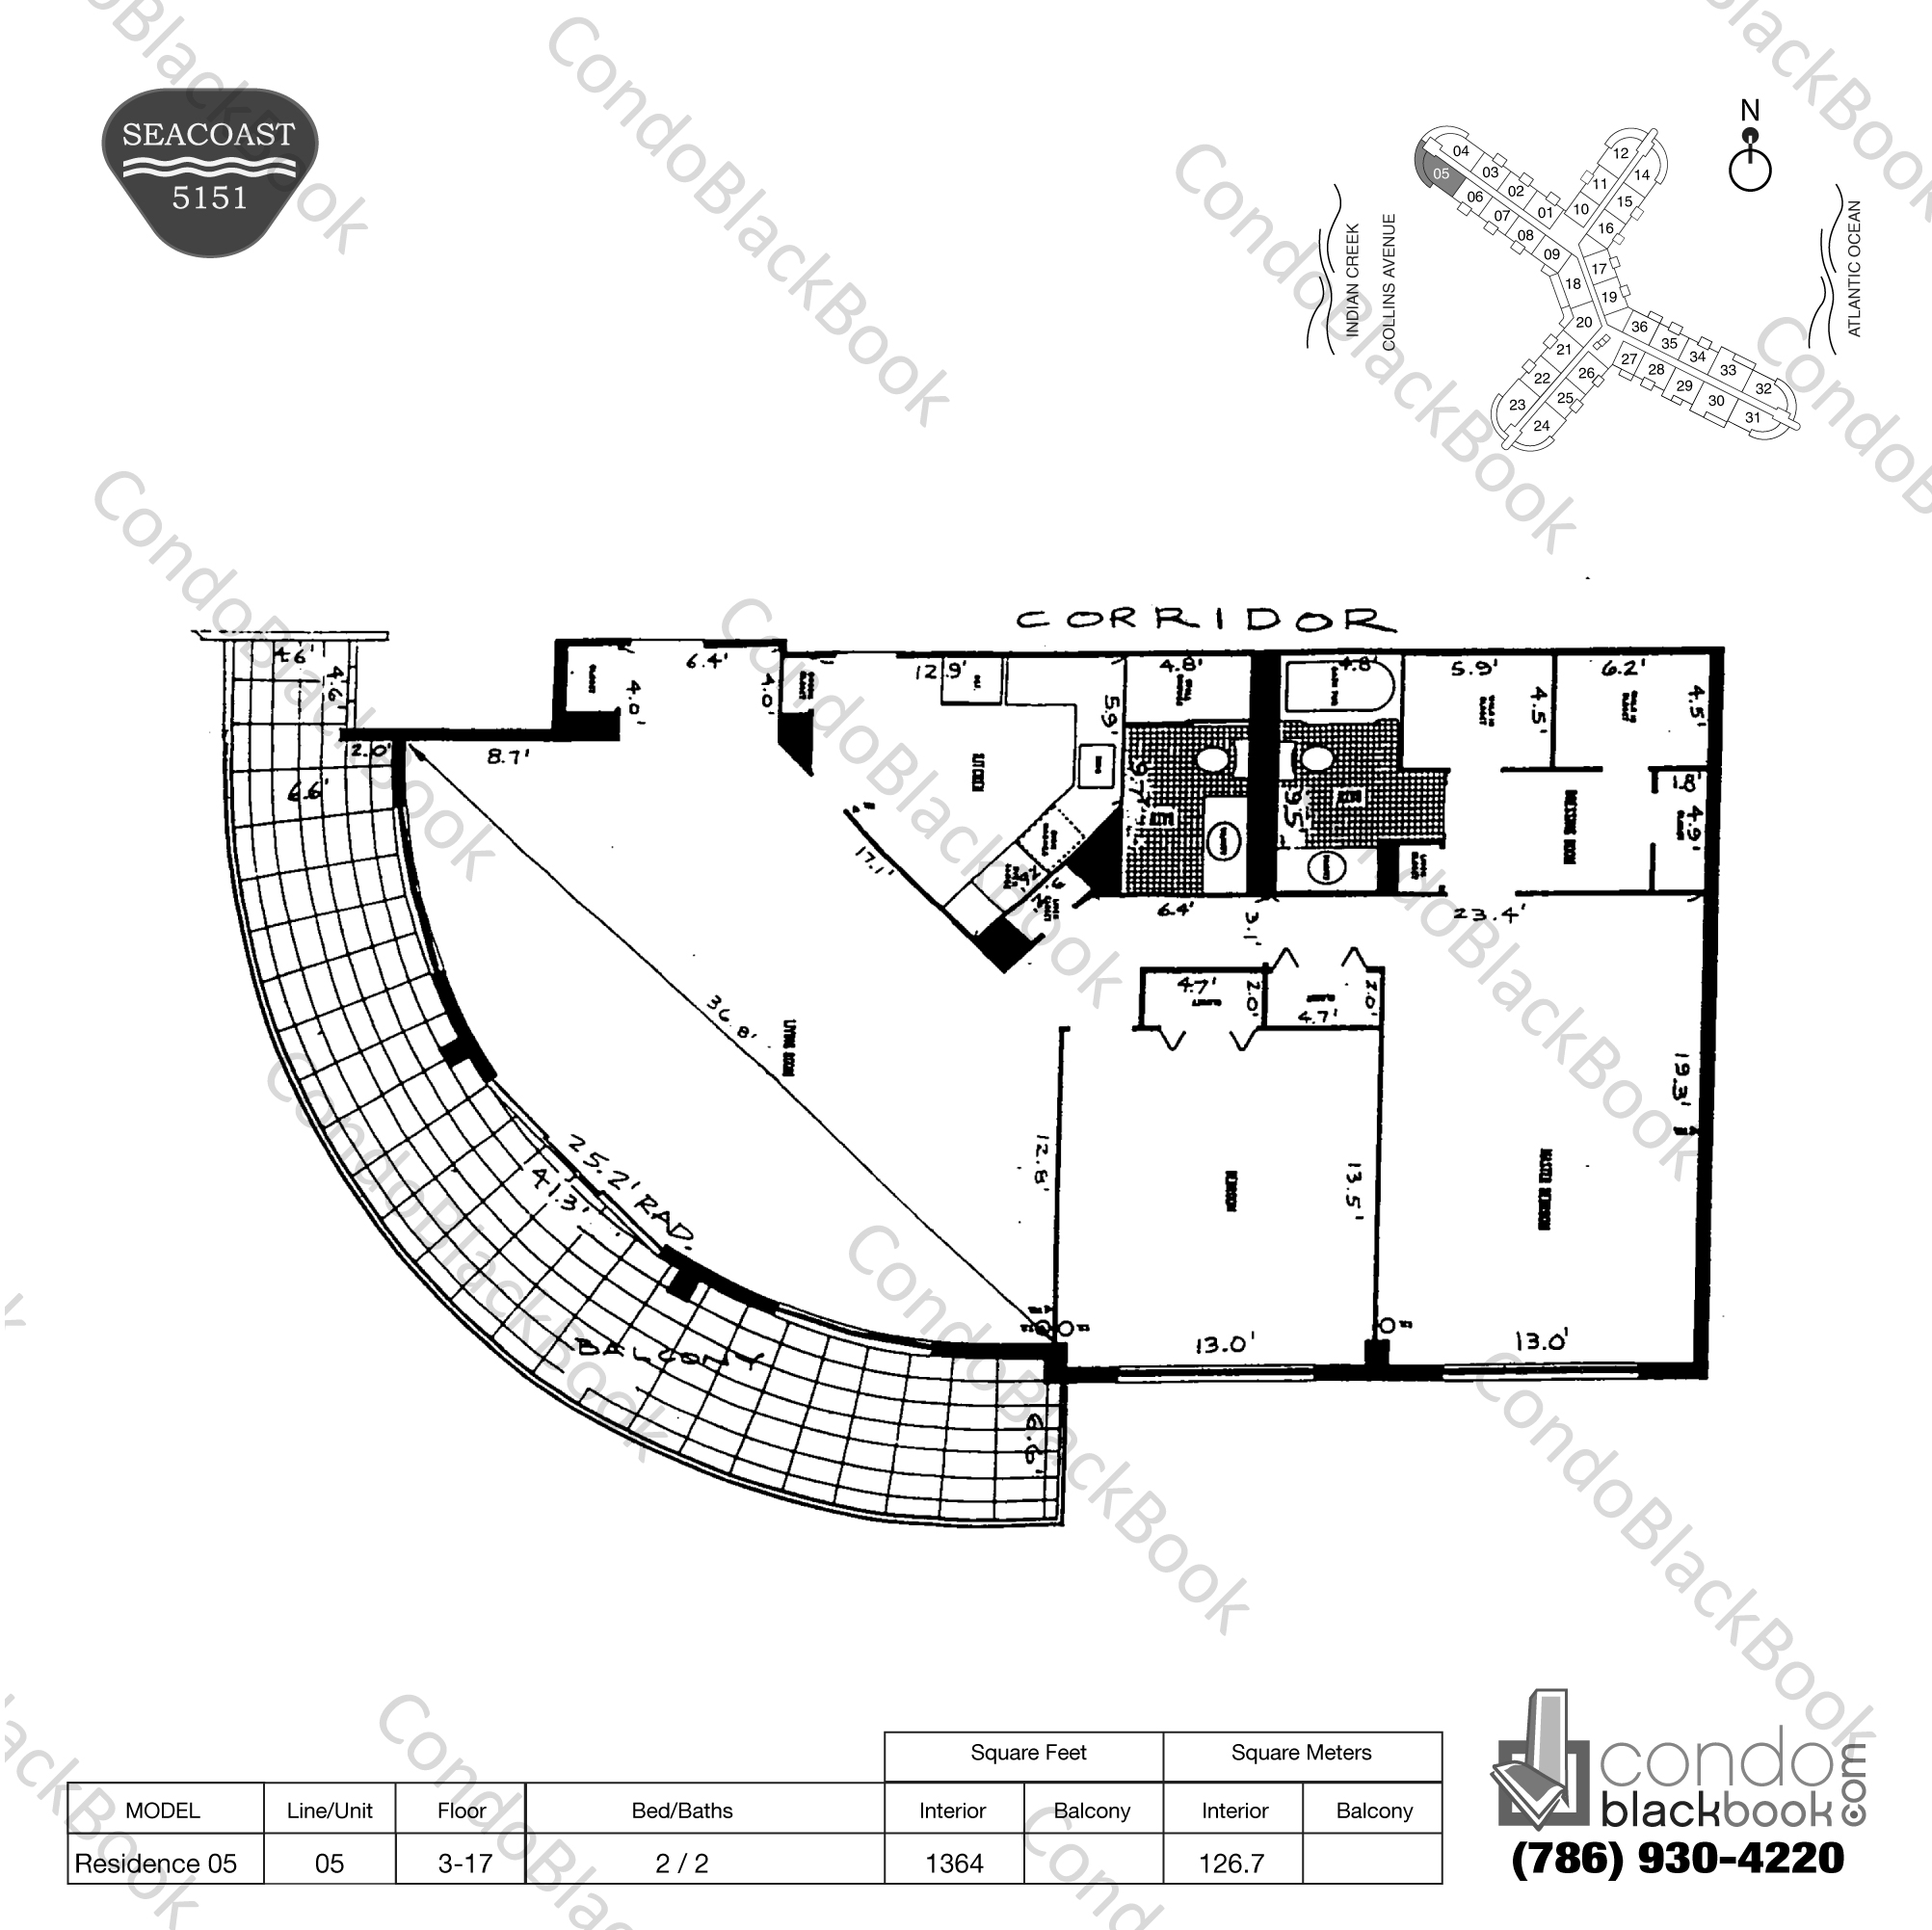 Floor plan for Seacoast 5151 Mid-Beach Miami Beach, model Residence 05, line 05, 2 / 2 bedrooms, 1364 sq ft